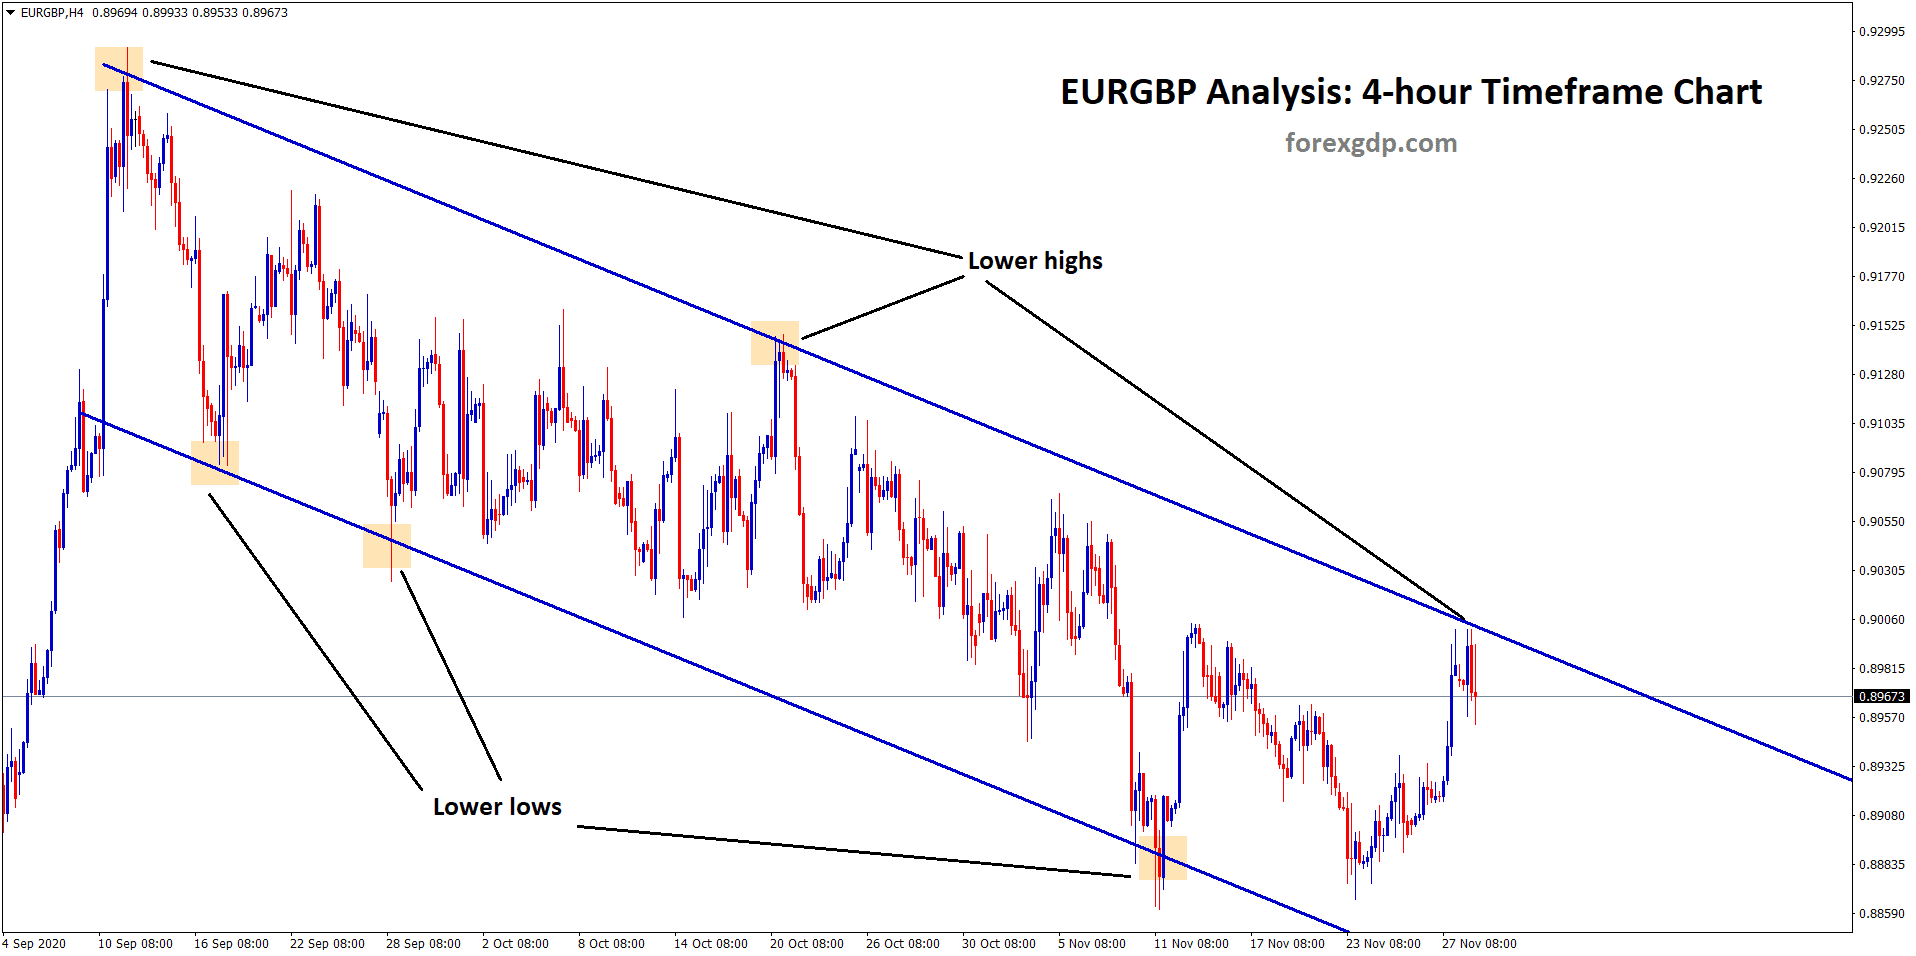 eurgbp going to fall from lower high